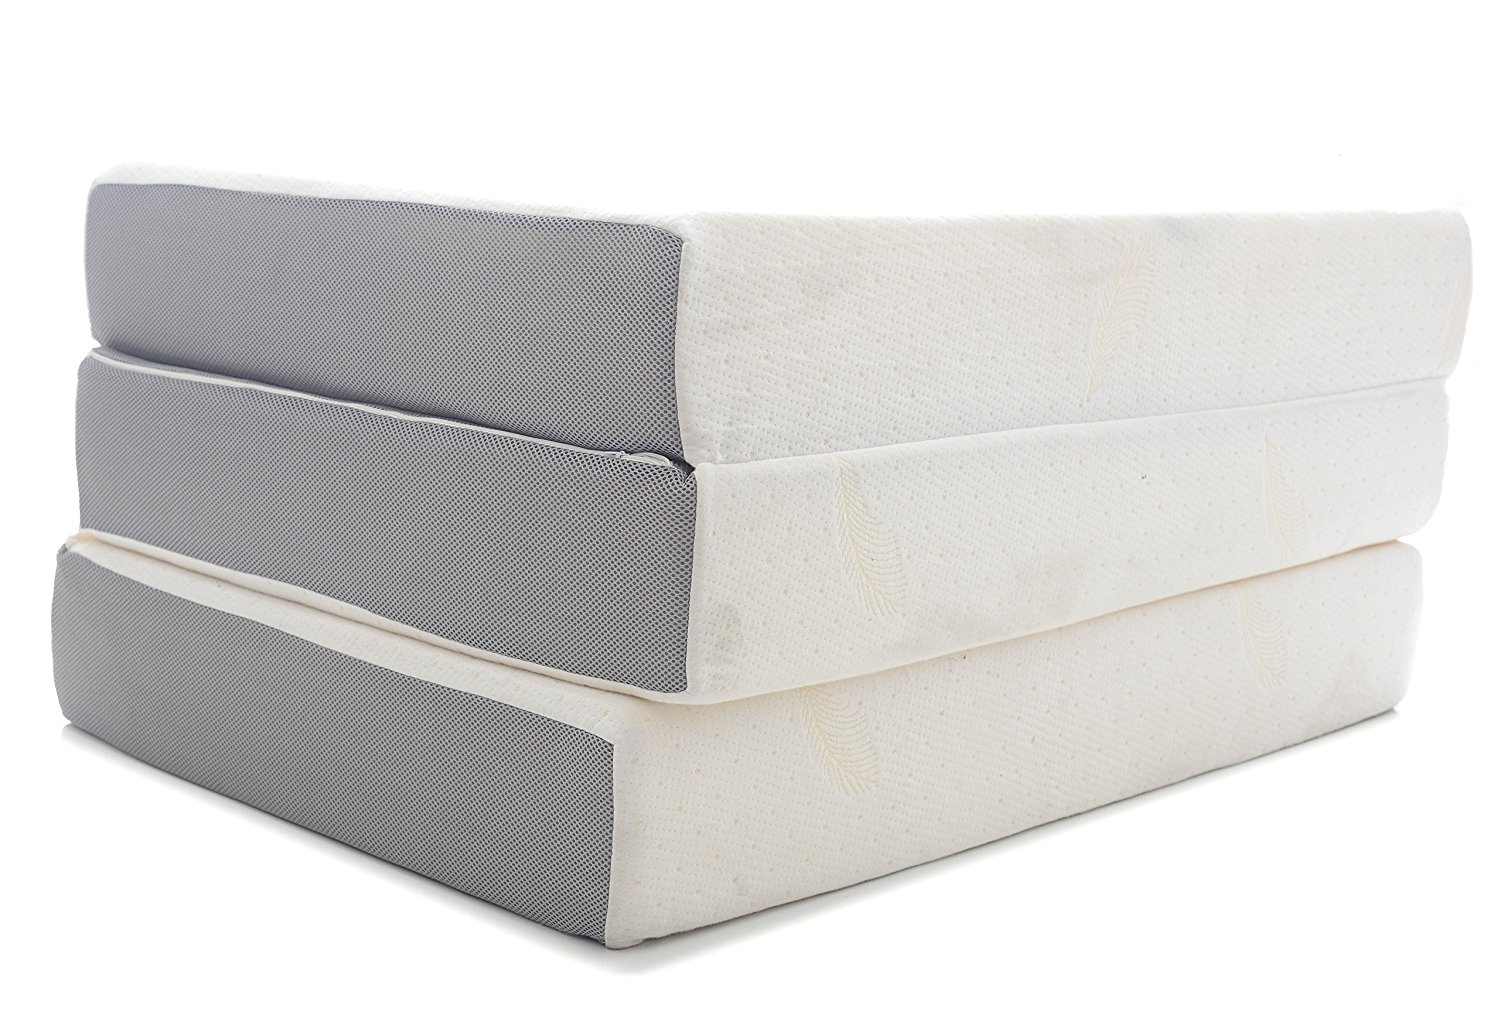 Milliard 6-Inch Memory Foam Tri-fold Mattress with Ultra Soft Removable Cover with Non-Slip Bottom - Twin